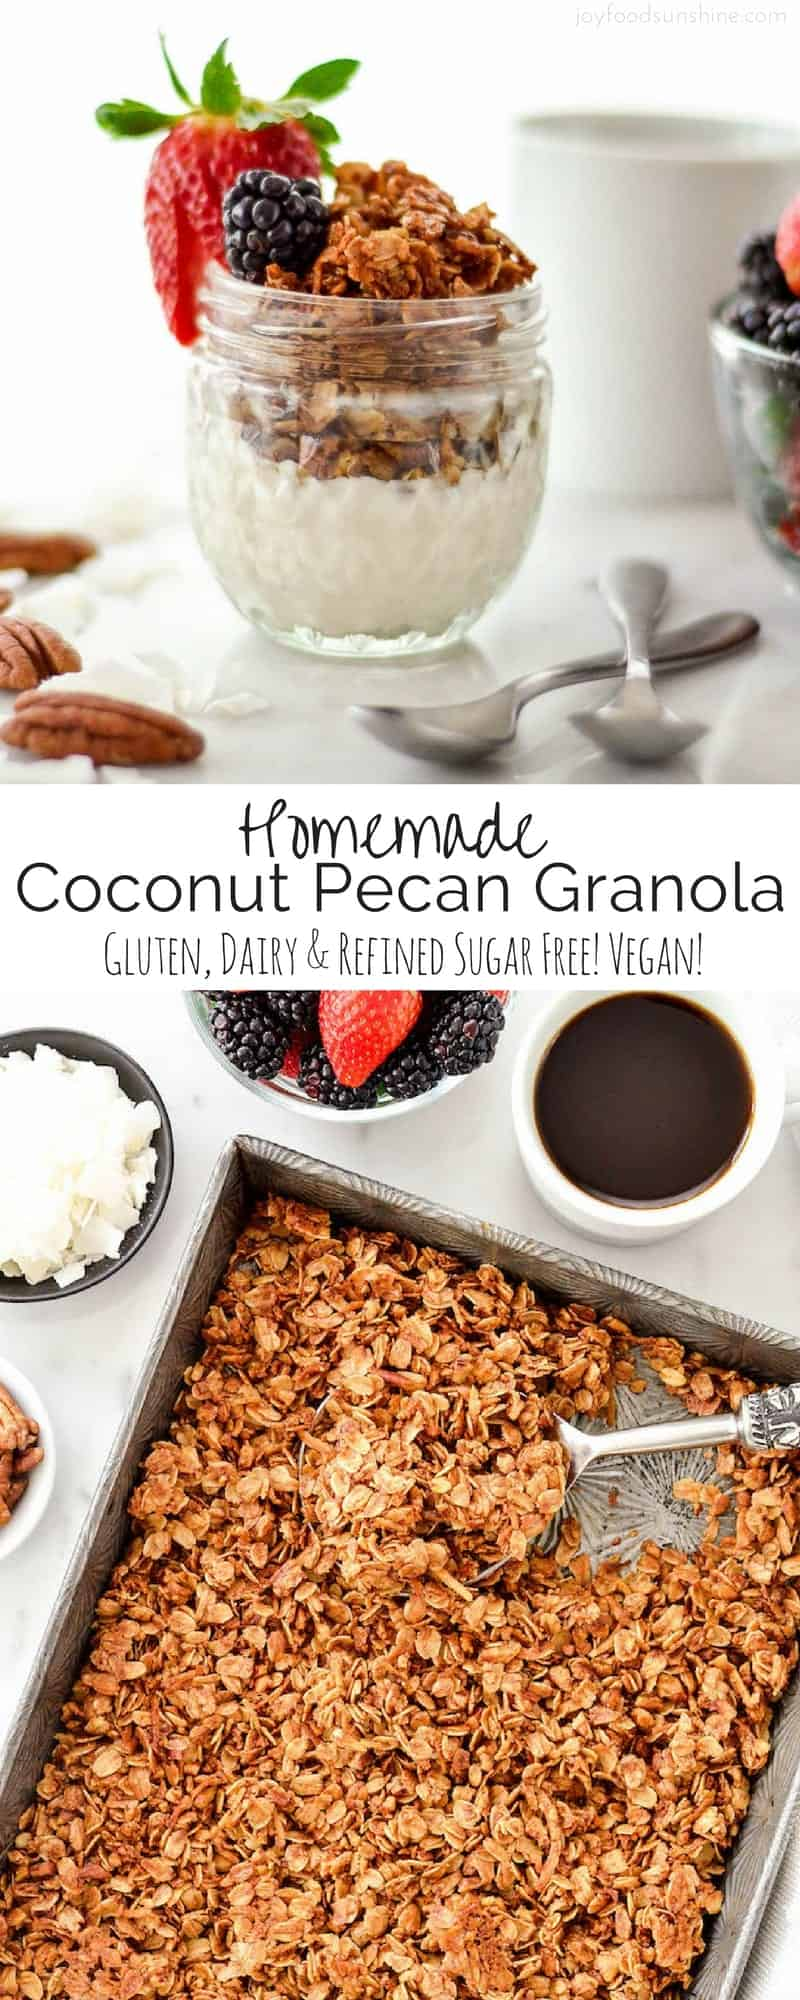 Healthy Homemade Coconut Pecan Granola! Oatmeal is the perfect breakfast recipe. Shredded coconut, pecans, coconut oil, and honey all come together to make the best granola ever! Gluten-free, dairy-free, refined sugar free and vegan!